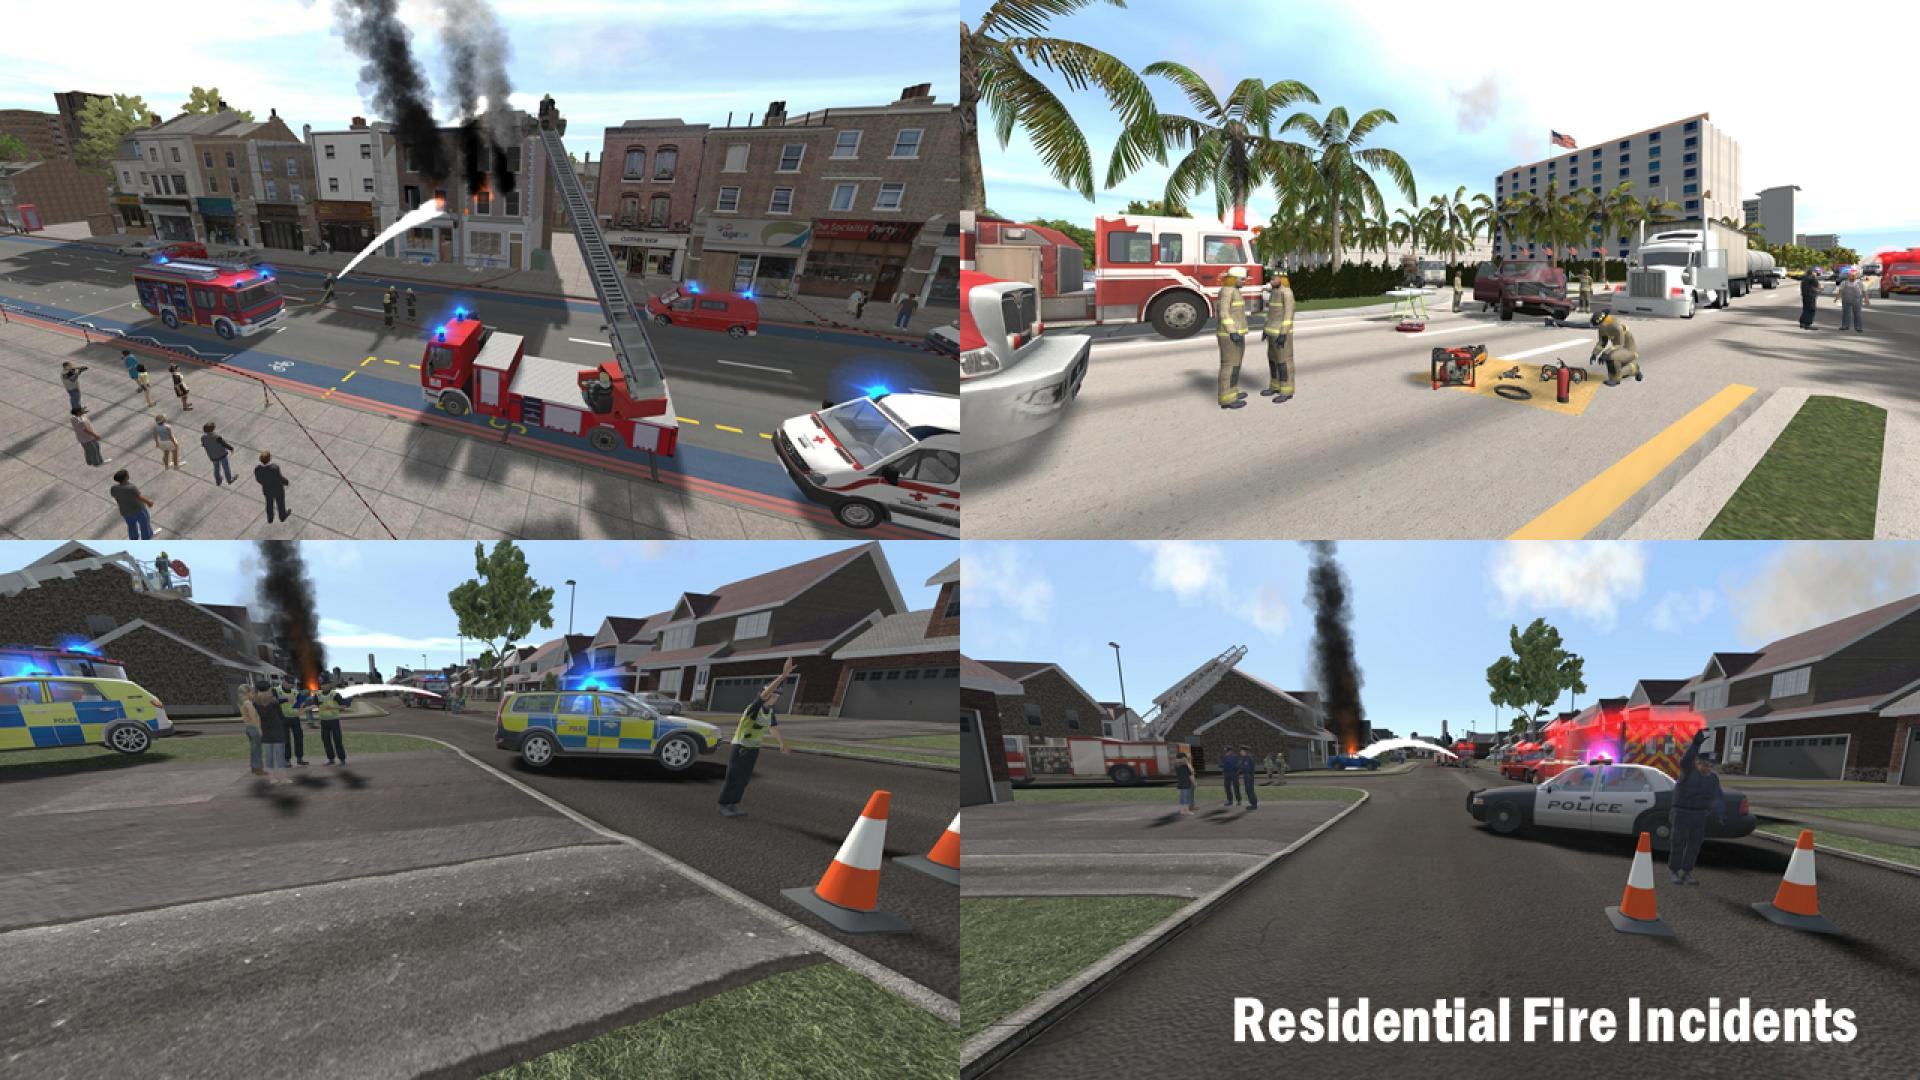 Screenshots of residential fires